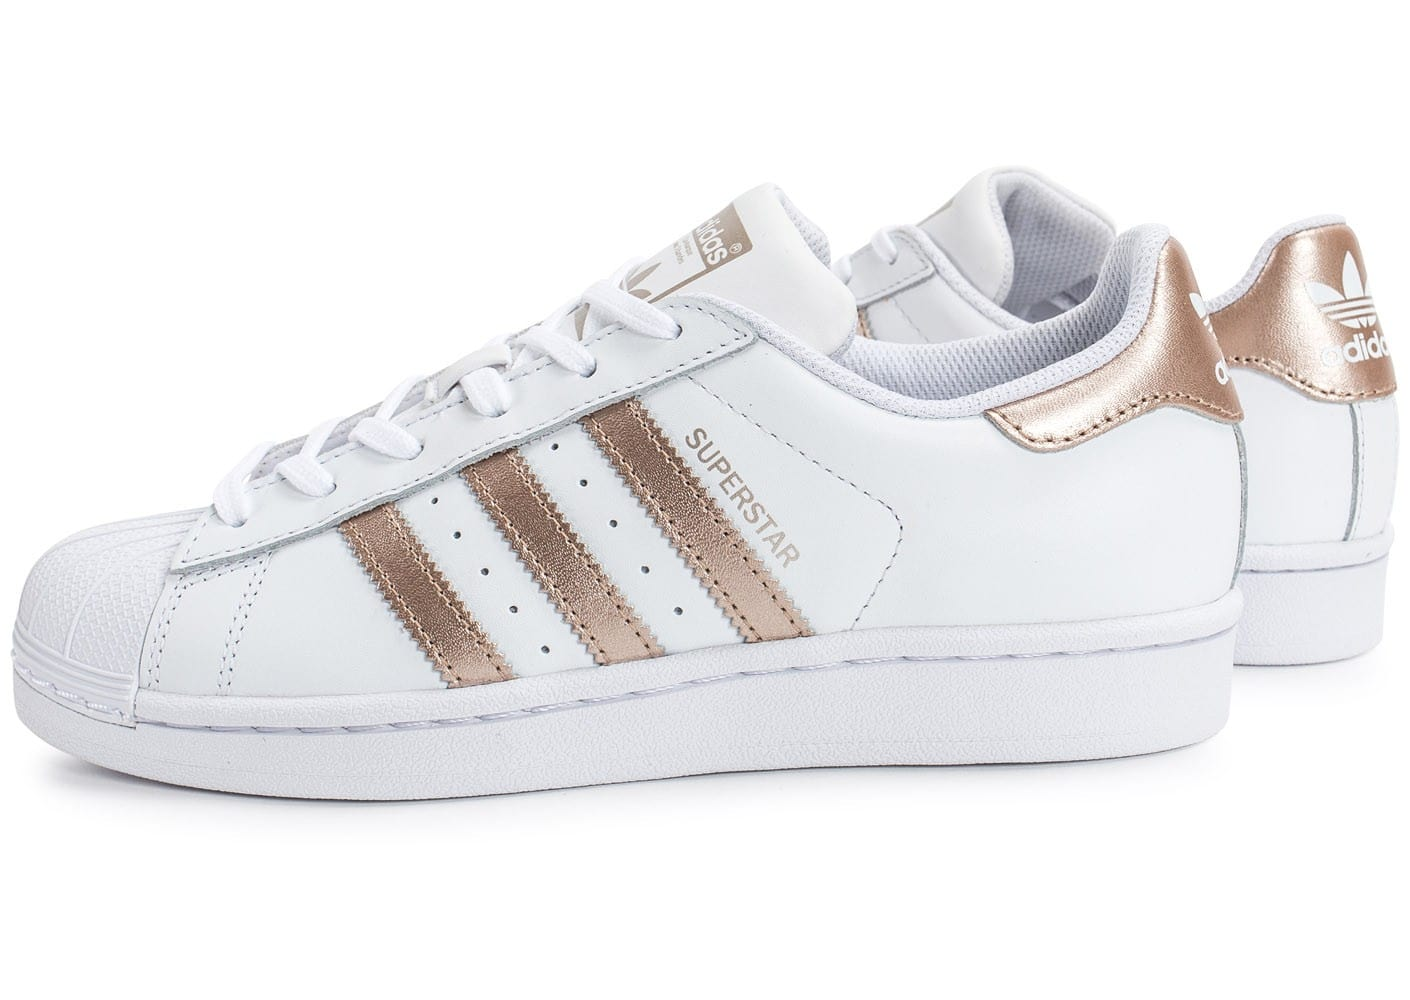 adidas superstar w rose gold chaussures adidas chausport. Black Bedroom Furniture Sets. Home Design Ideas